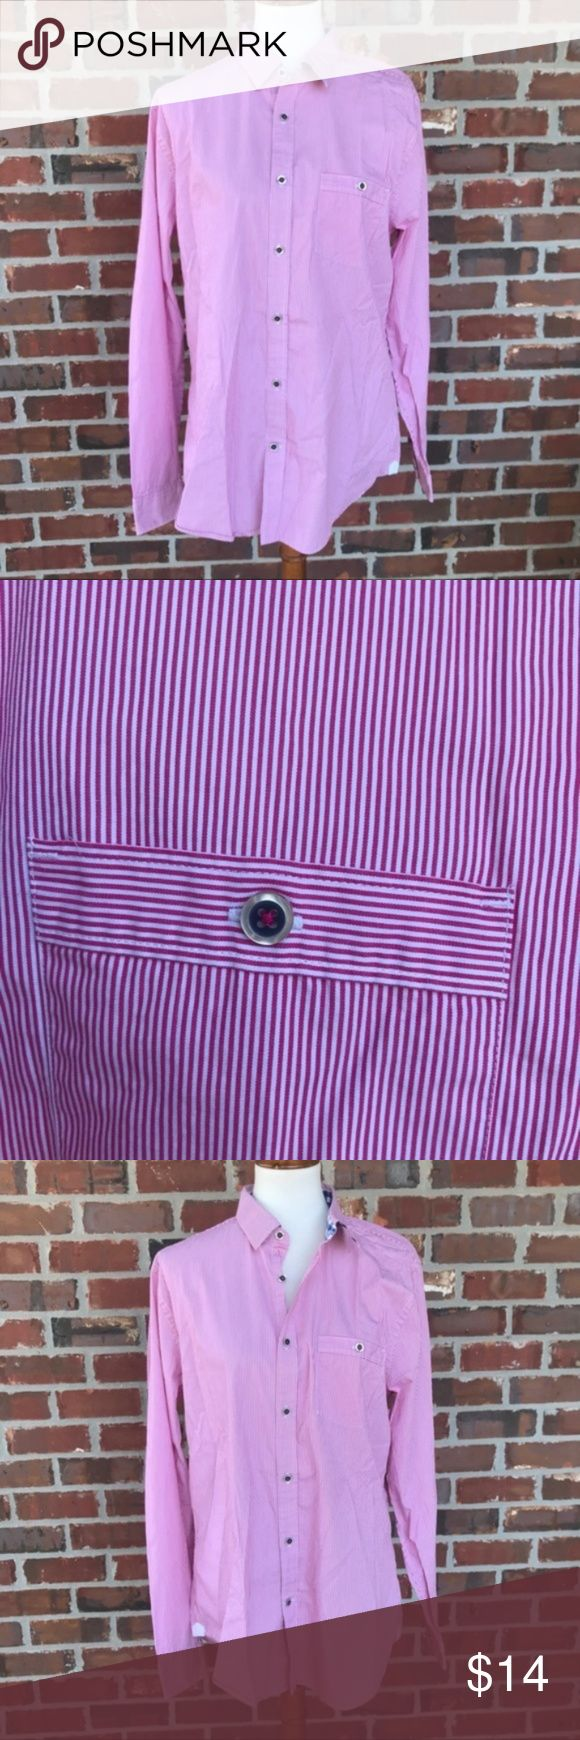 """Slim Fit Vertical Stripe Cotton Dress Shirt Sharp, sleek, timeless - this is a dress shirt for all occasions. Wear it to weddings with a two-piece suit, to the office with dress pants or out to dinner with chinos. Pure cotton comfort ensures breathability from morning till night. - Hot Pink Stripes - Perfect condition - Chest 42-44.5"""" Sleeve 34-35.5"""" Neck 16-16.5"""" Express Shirts Dress Shirts"""